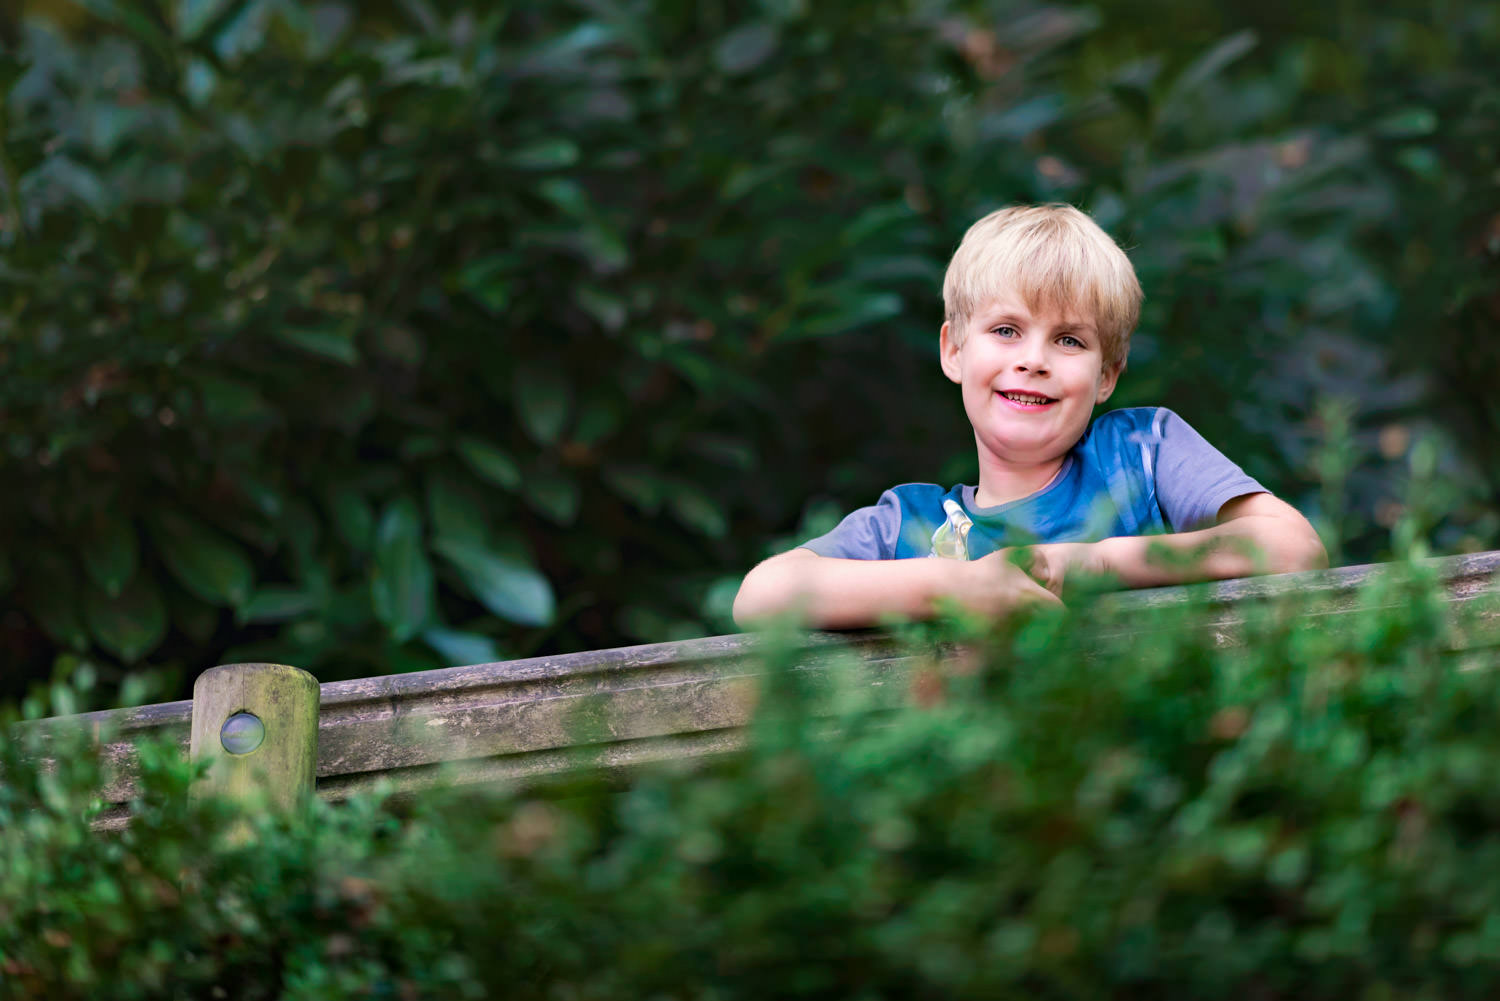 Boy peering over fence and hedge at camera